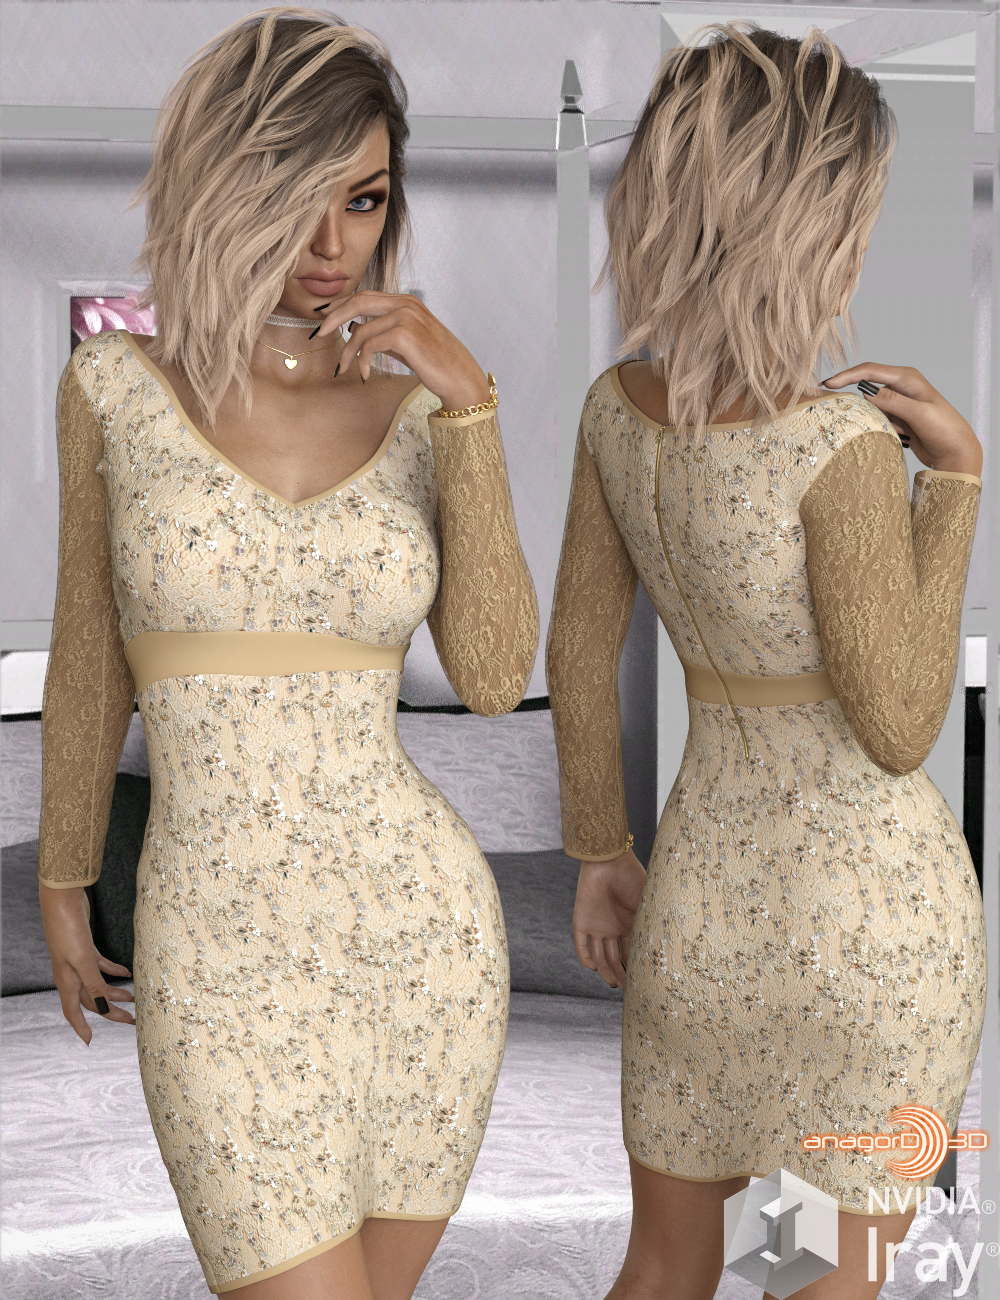 VERSUS - Long Sleeve Lace Dress for Genesis 8 Females